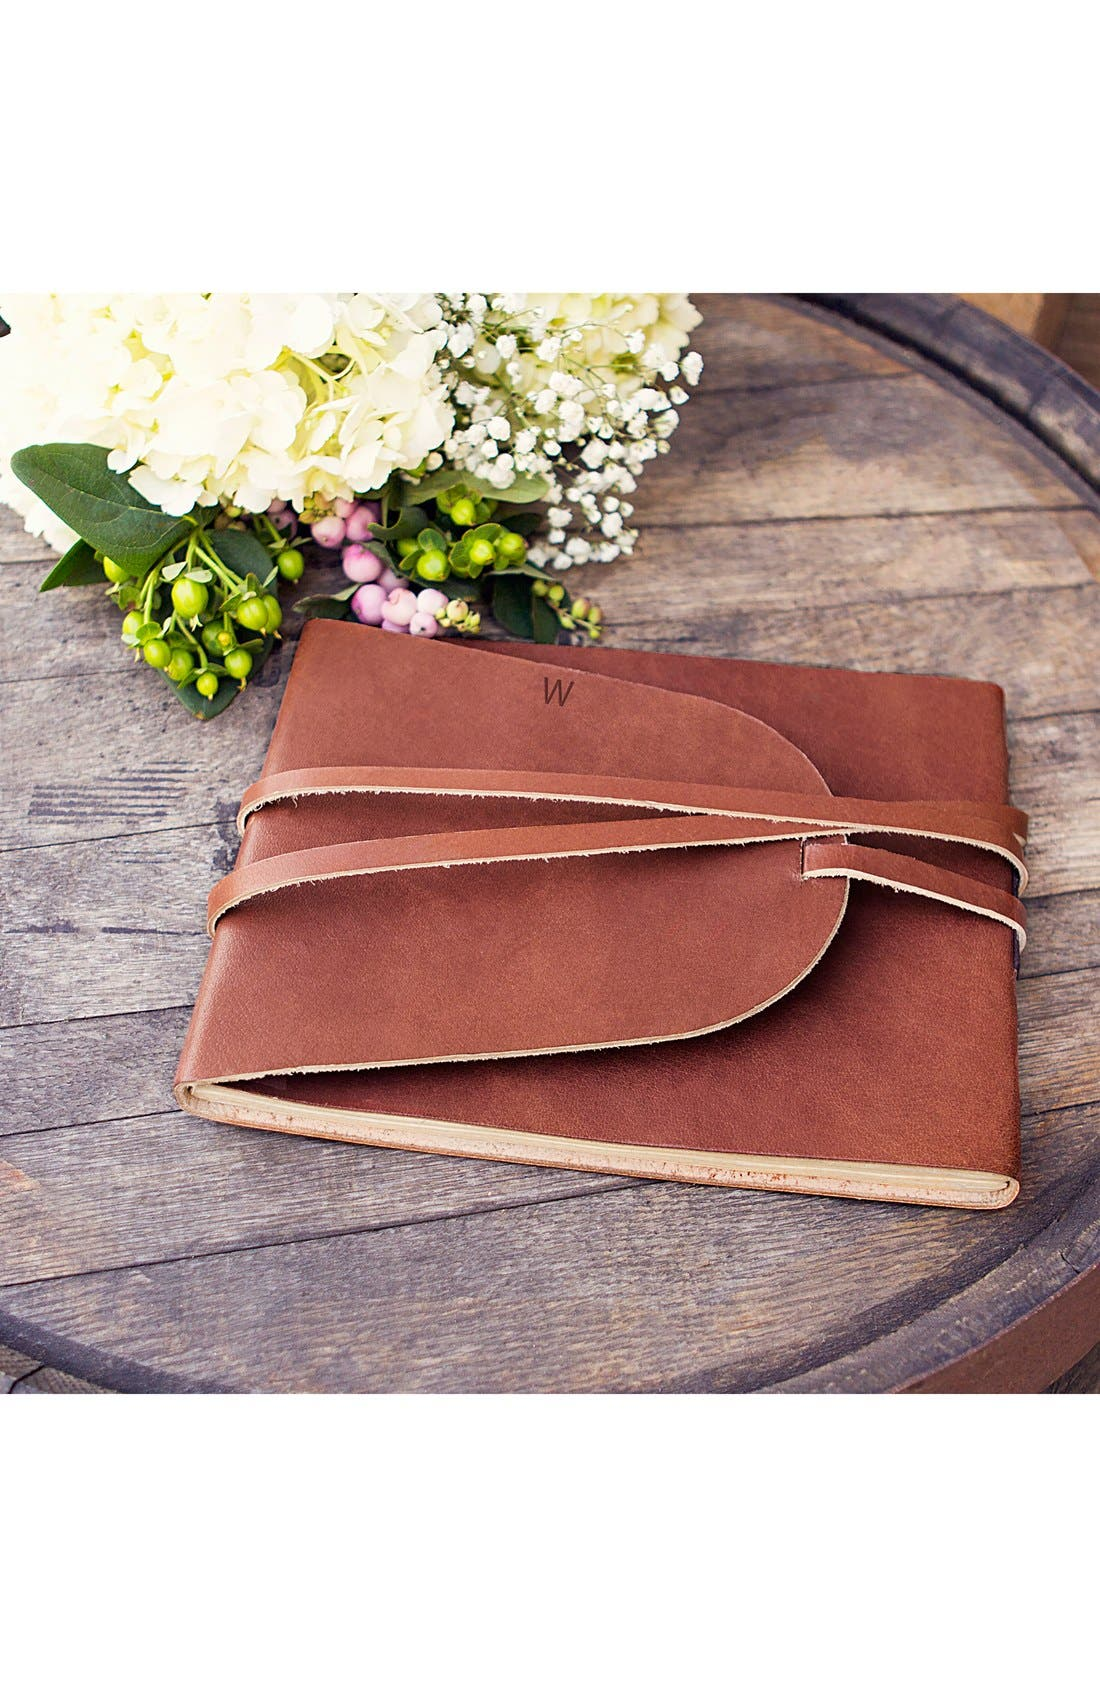 Main Image - Cathy's Concepts Monogram Leather Guest Book